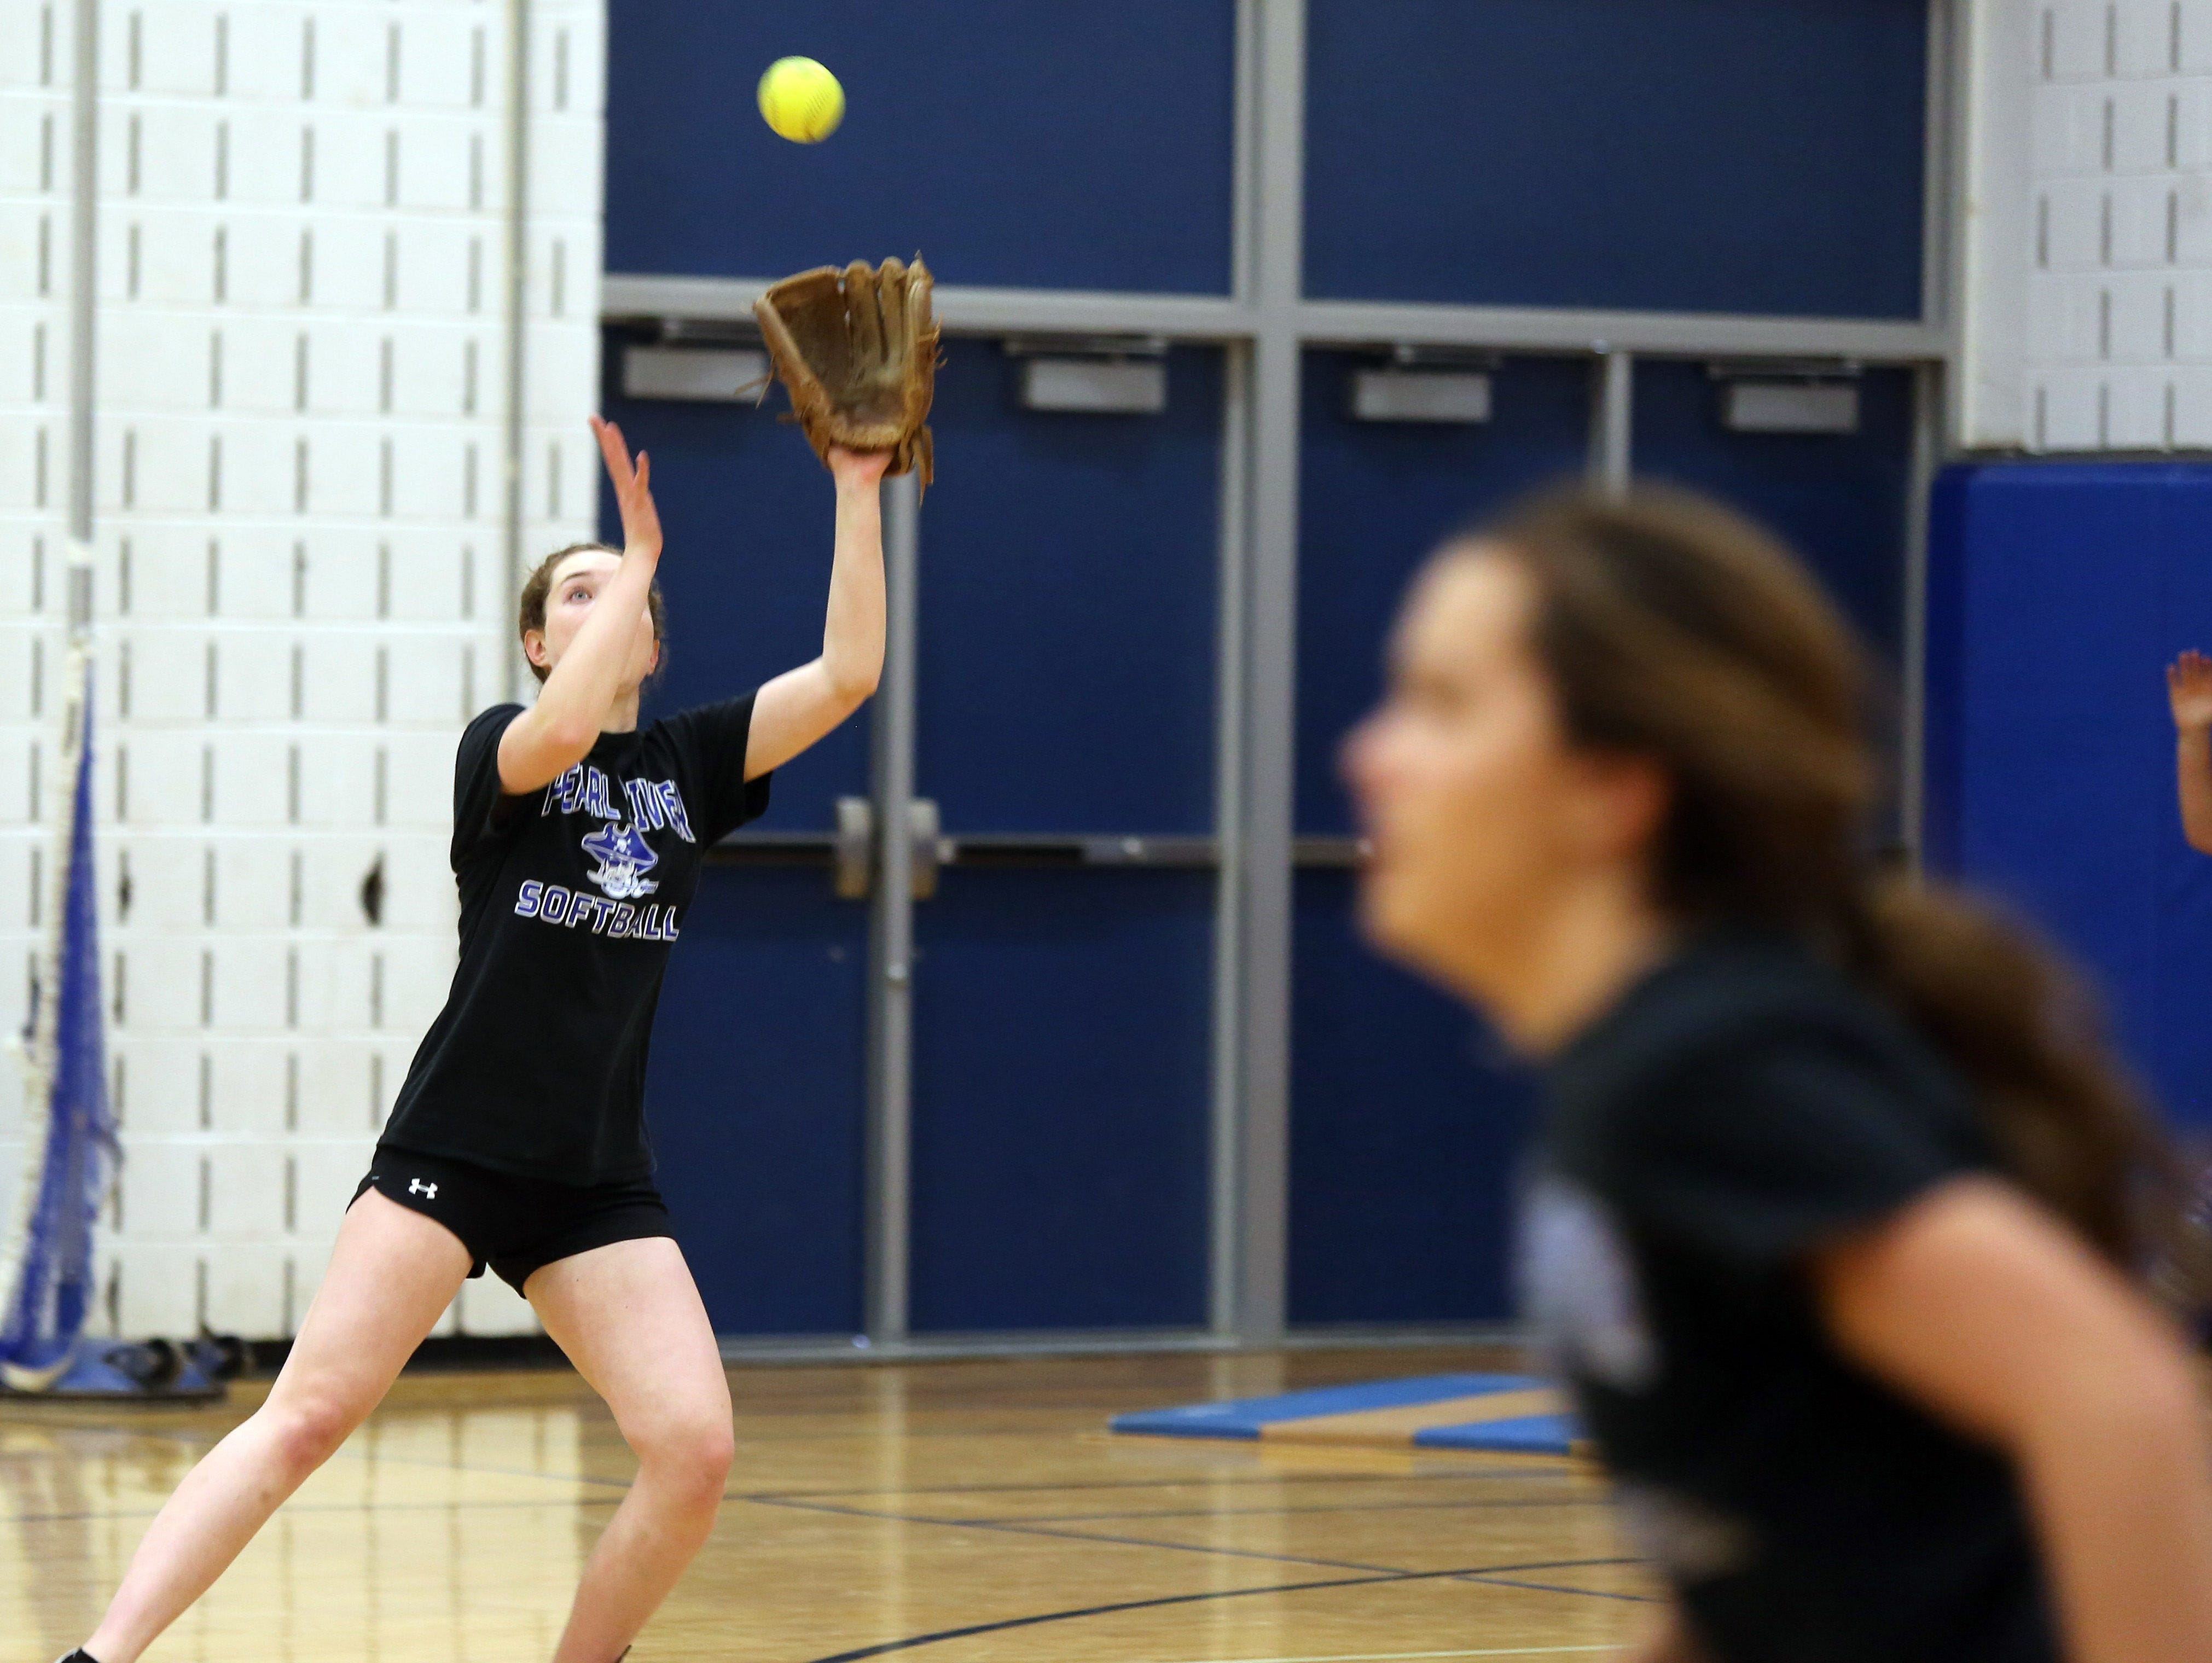 Emily Turilli catches the ball during girls softball practices in the gym at Pearl River high school on March 14, 2016.